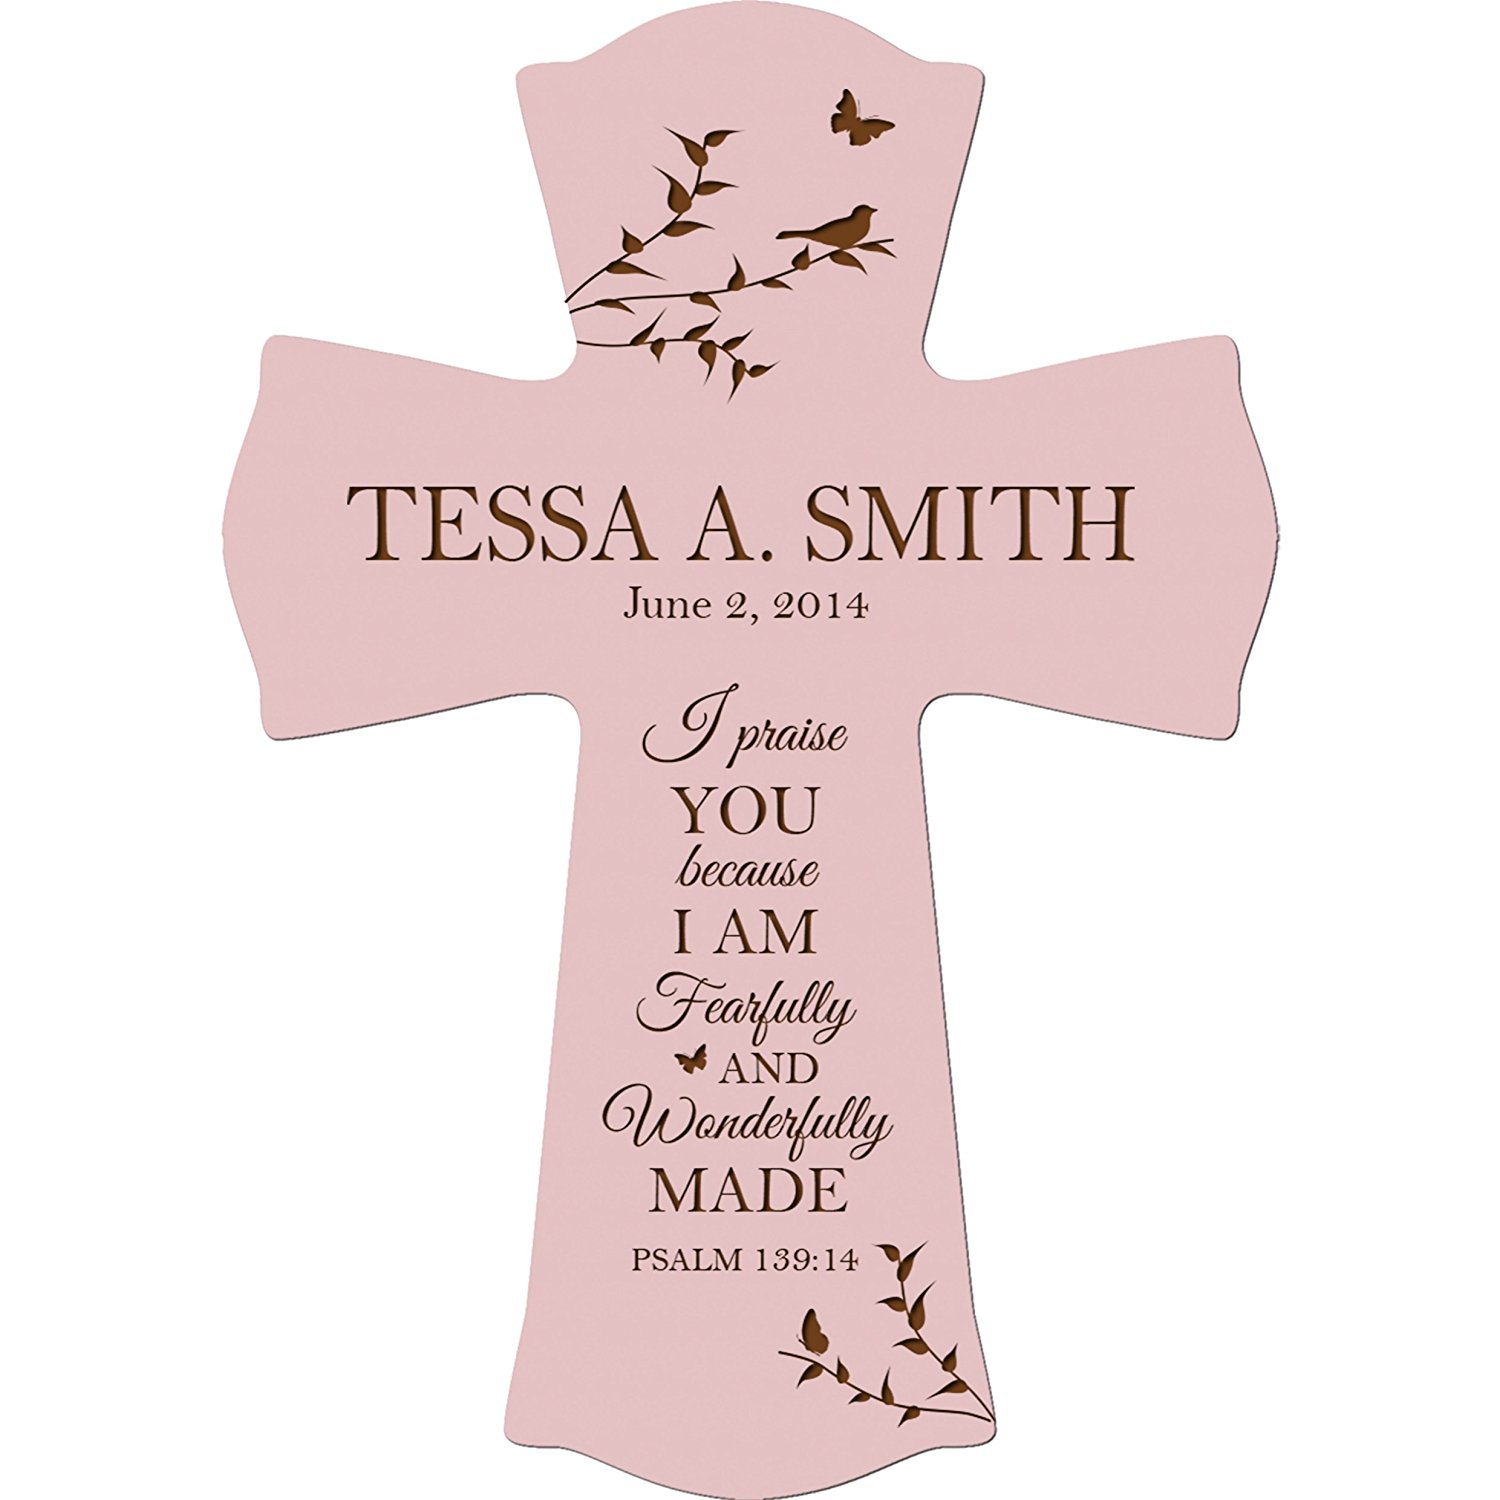 Personalized Christening Gifts for boys and girls Custom Baptism 1st Holy Communion Cross keepsakes I Praise